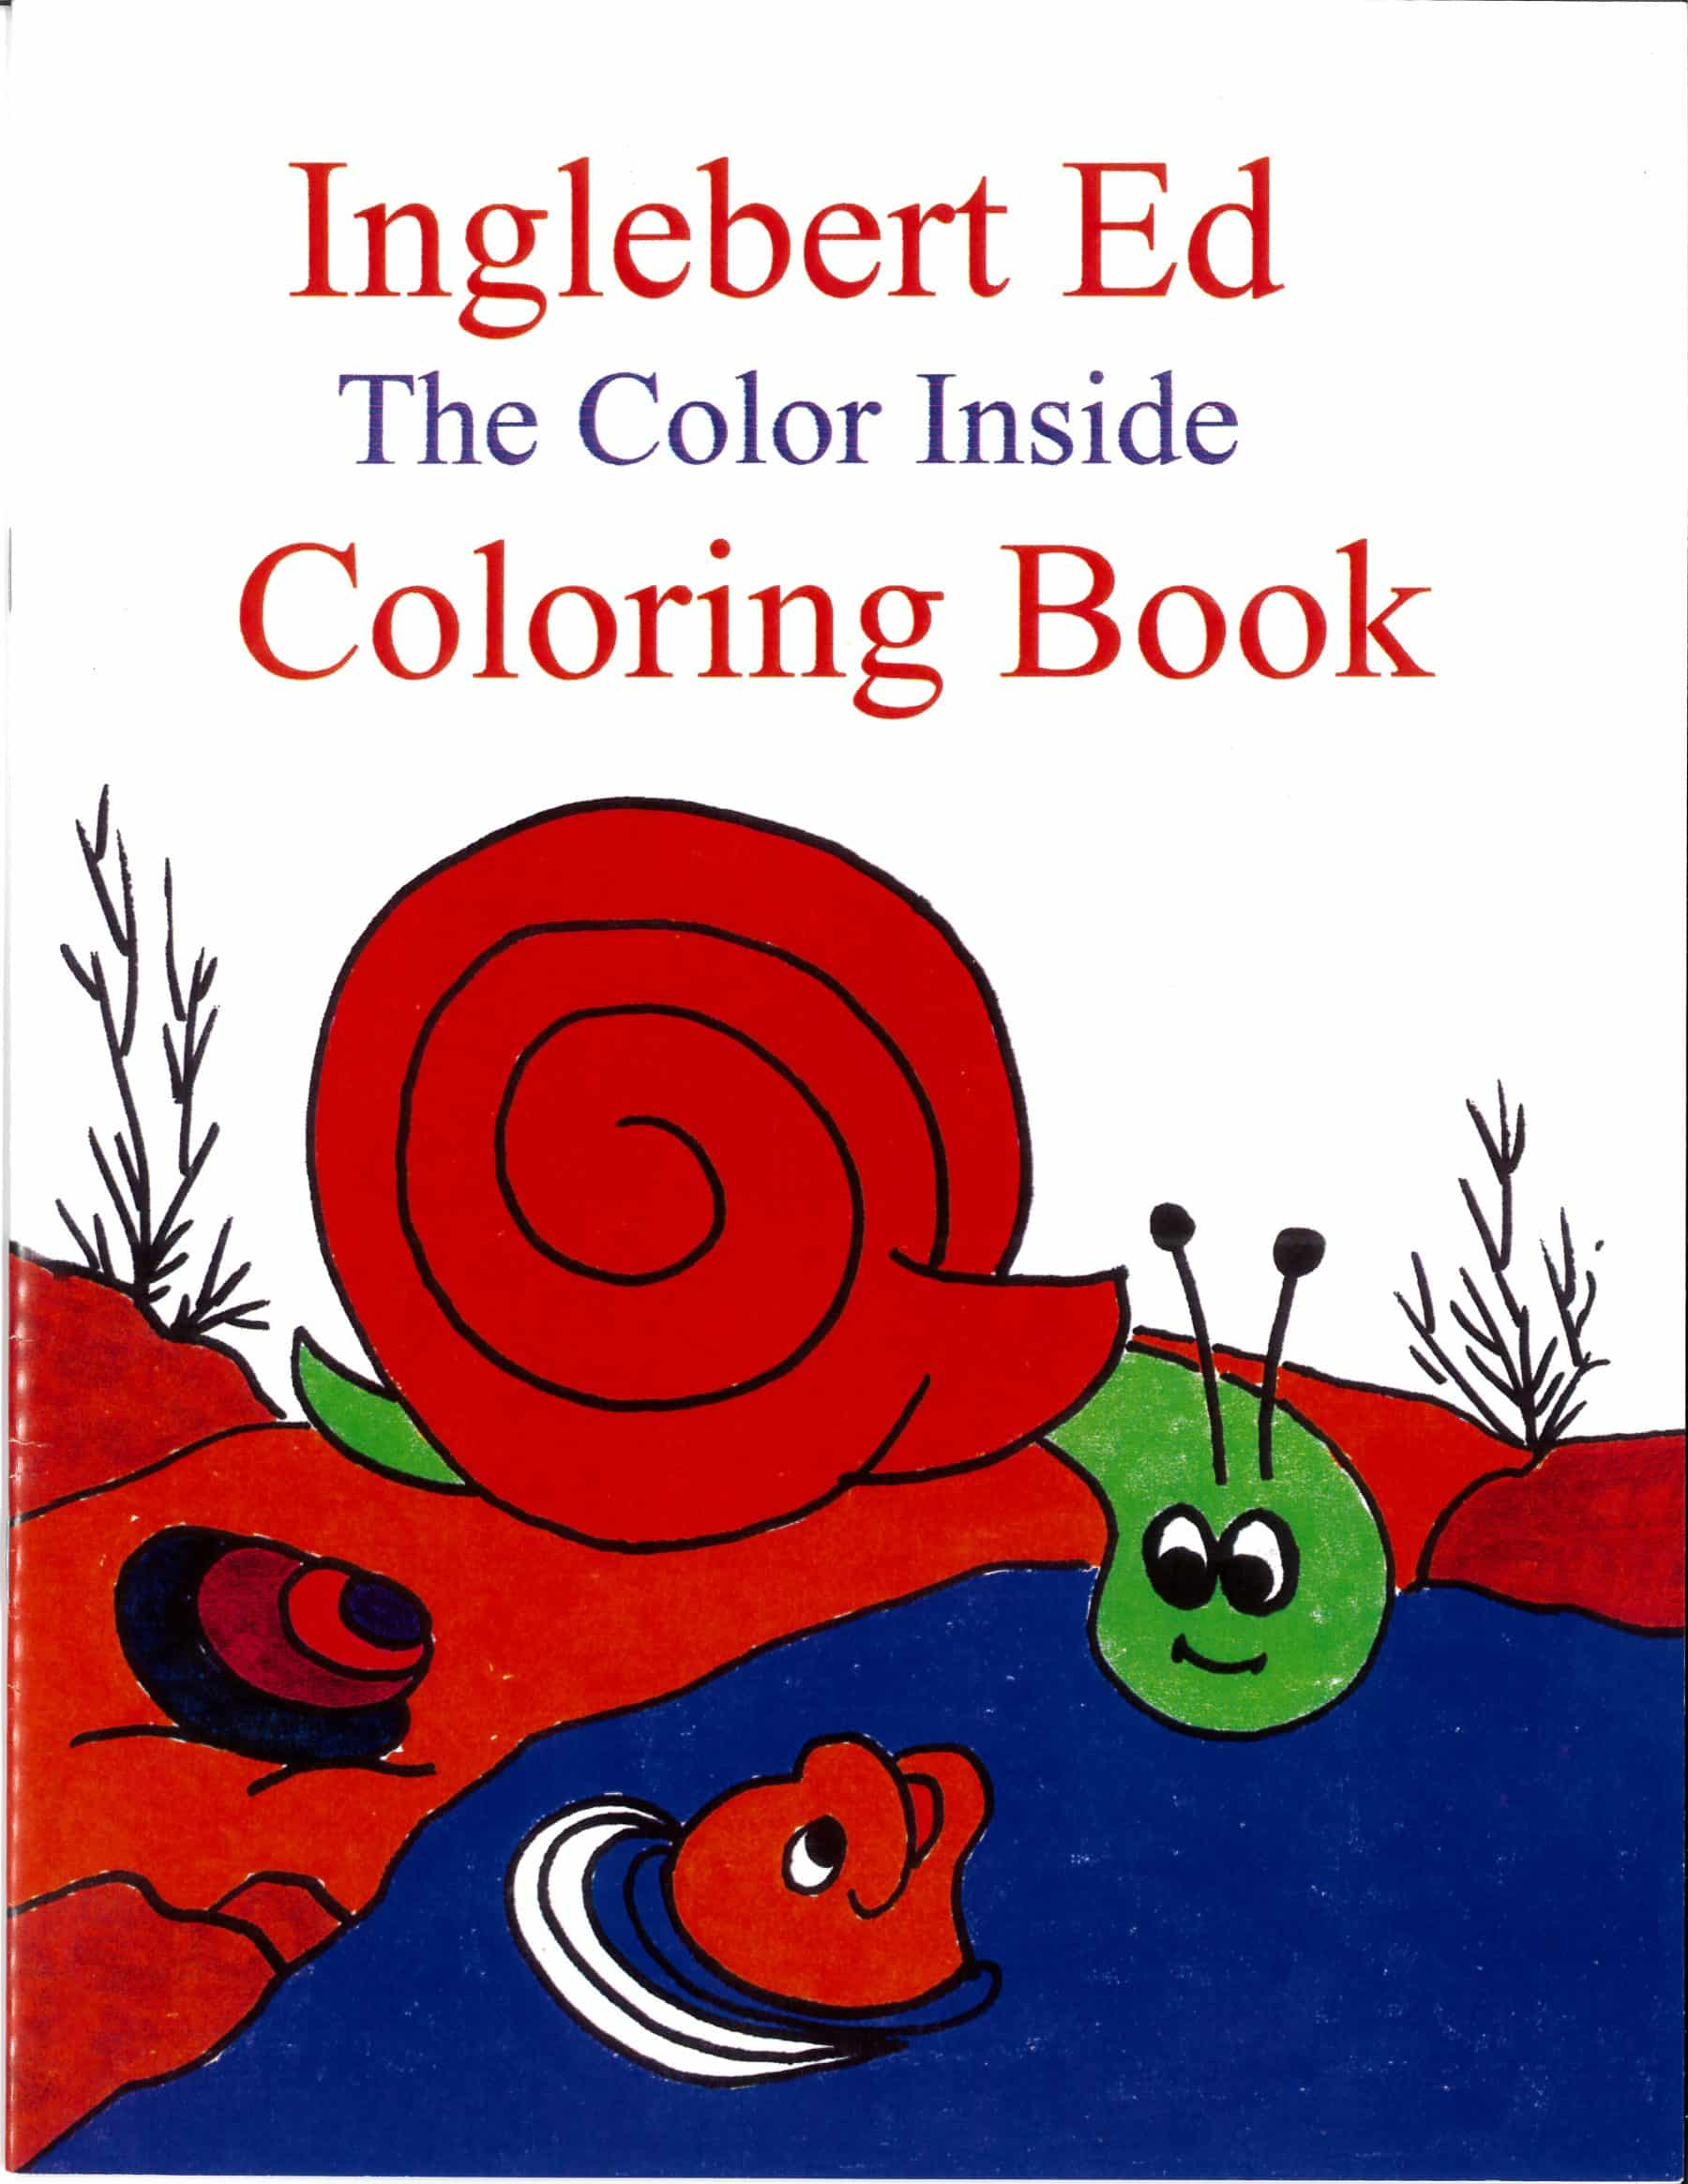 Inglebert Ed - The Color Inside (Coloring Book)